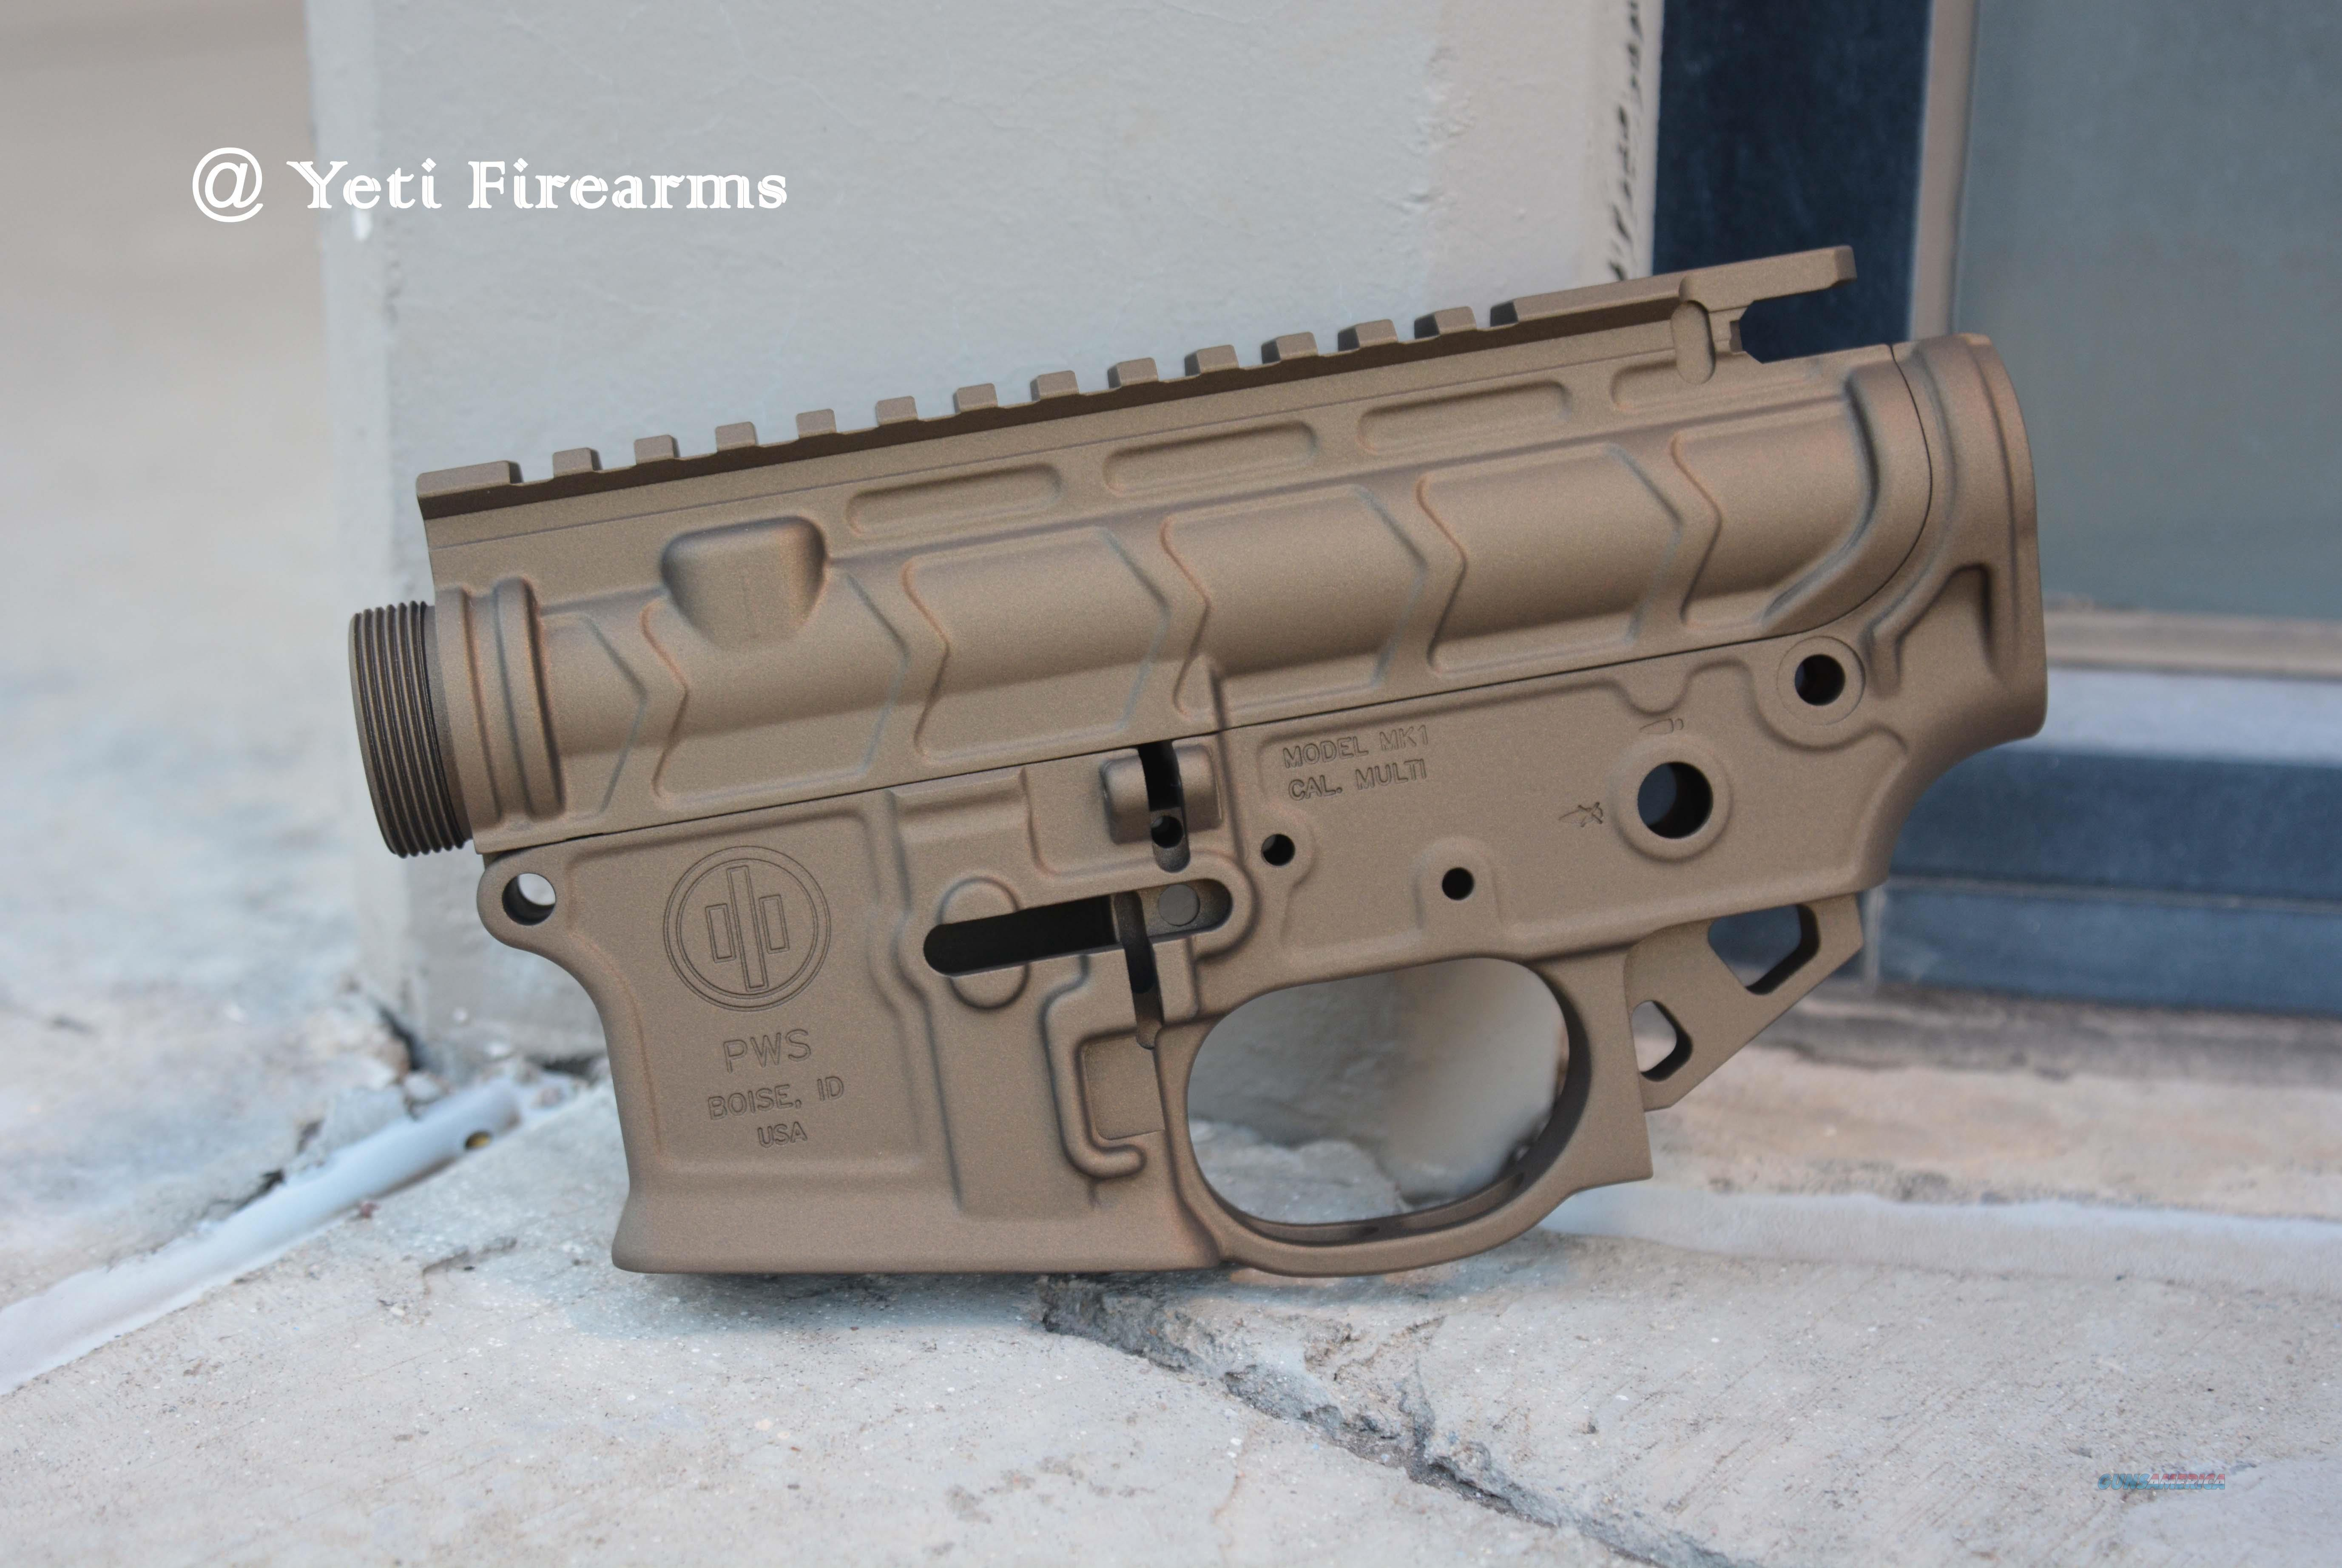 X-Werks PWS MK1 MOD 2 Lower /BL Upper Burnt Bronze  Guns > Rifles > AR-15 Rifles - Small Manufacturers > Lower Only